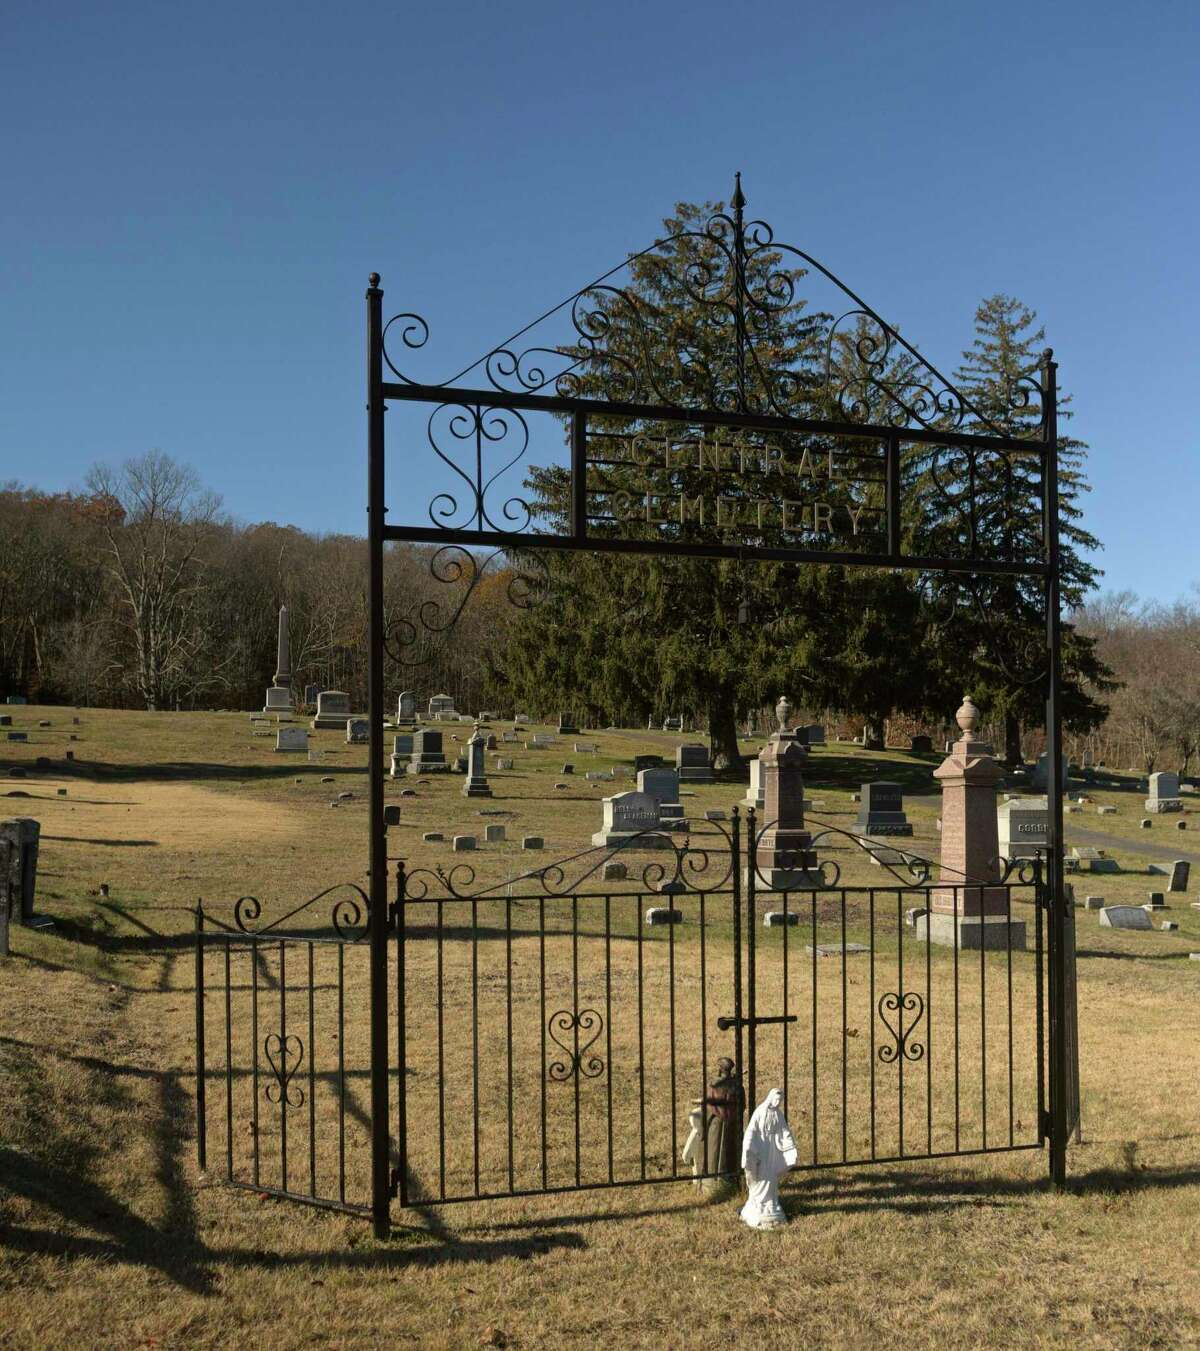 Central Cemetery in Brookfield. Thursday morning, November 21, 2019, in Brookfield, Conn.